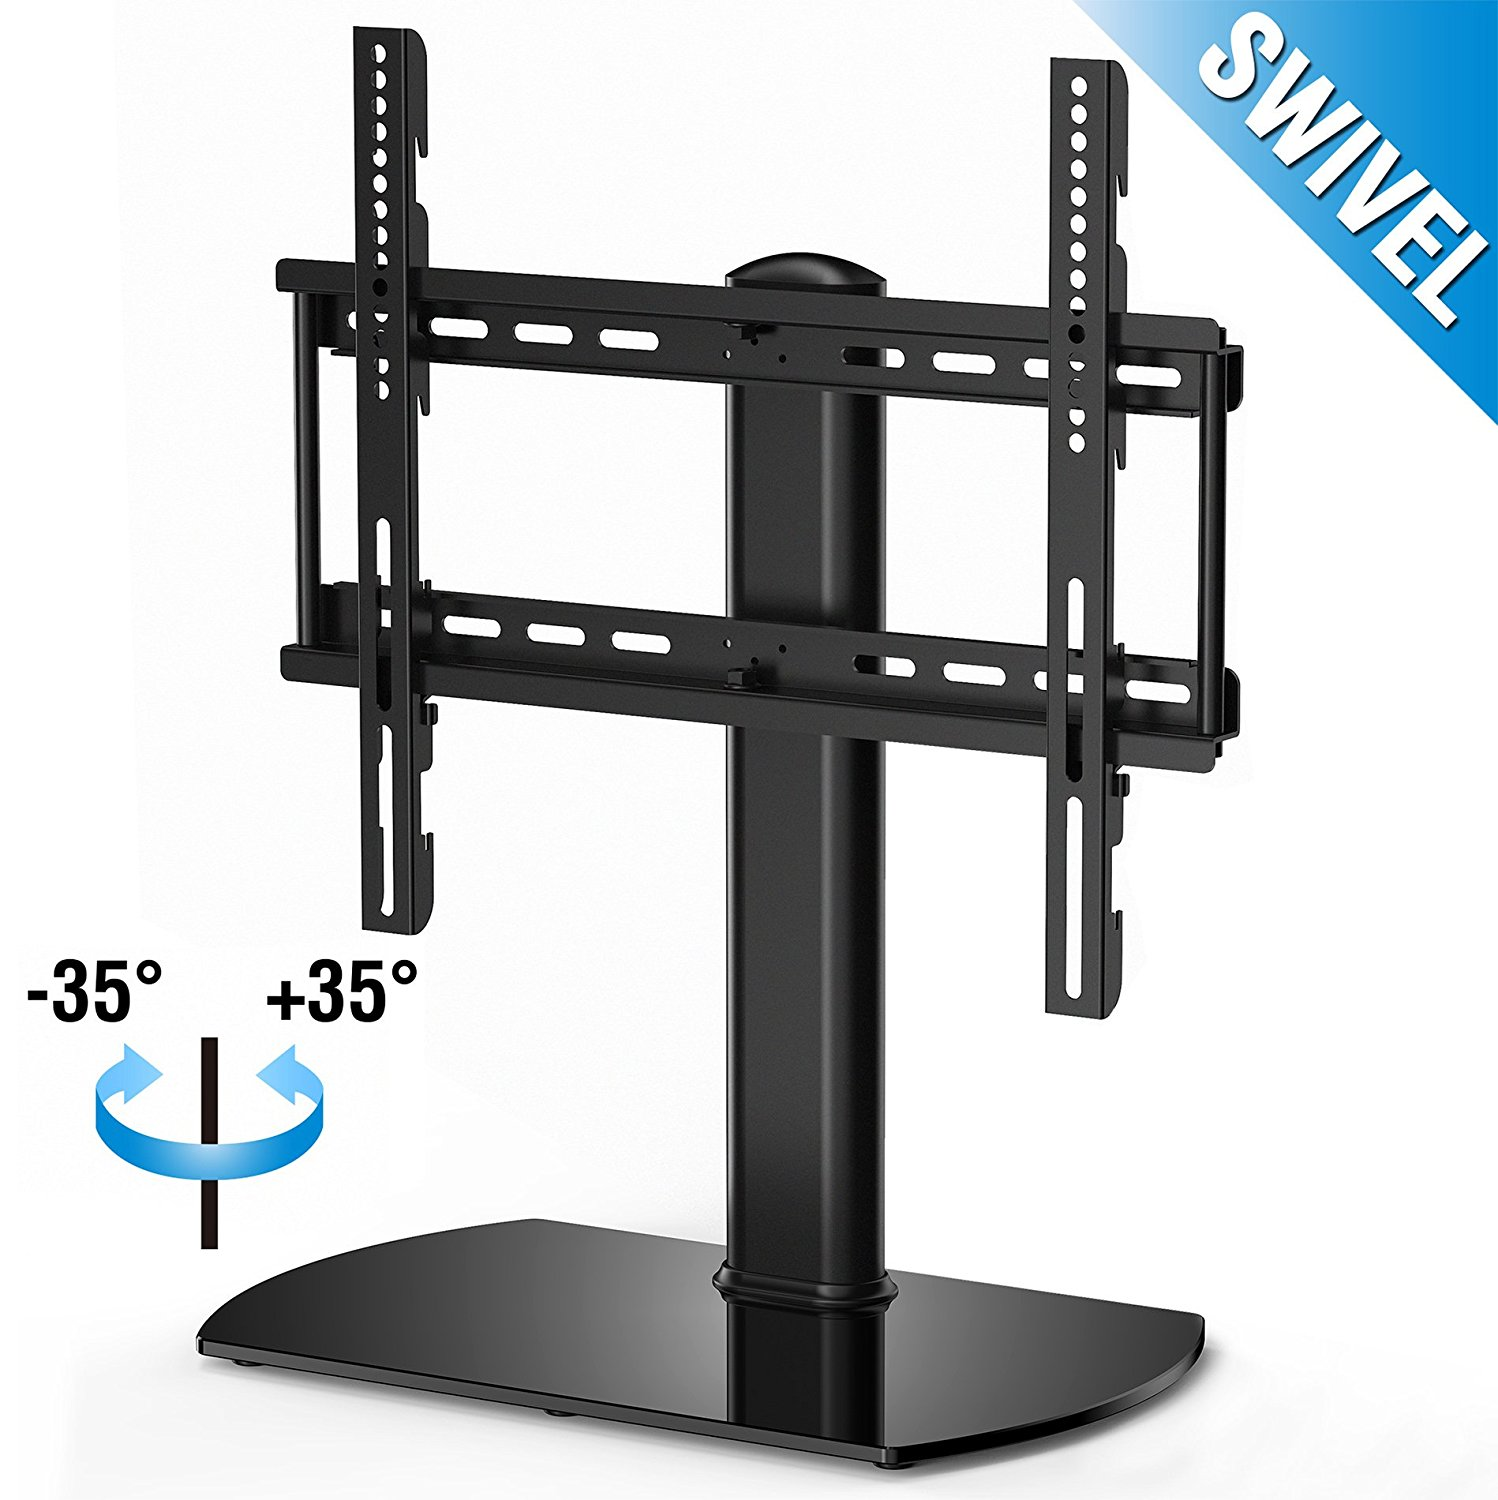 FITUEYES Universal Tabletop TV Stand Base With Swivel